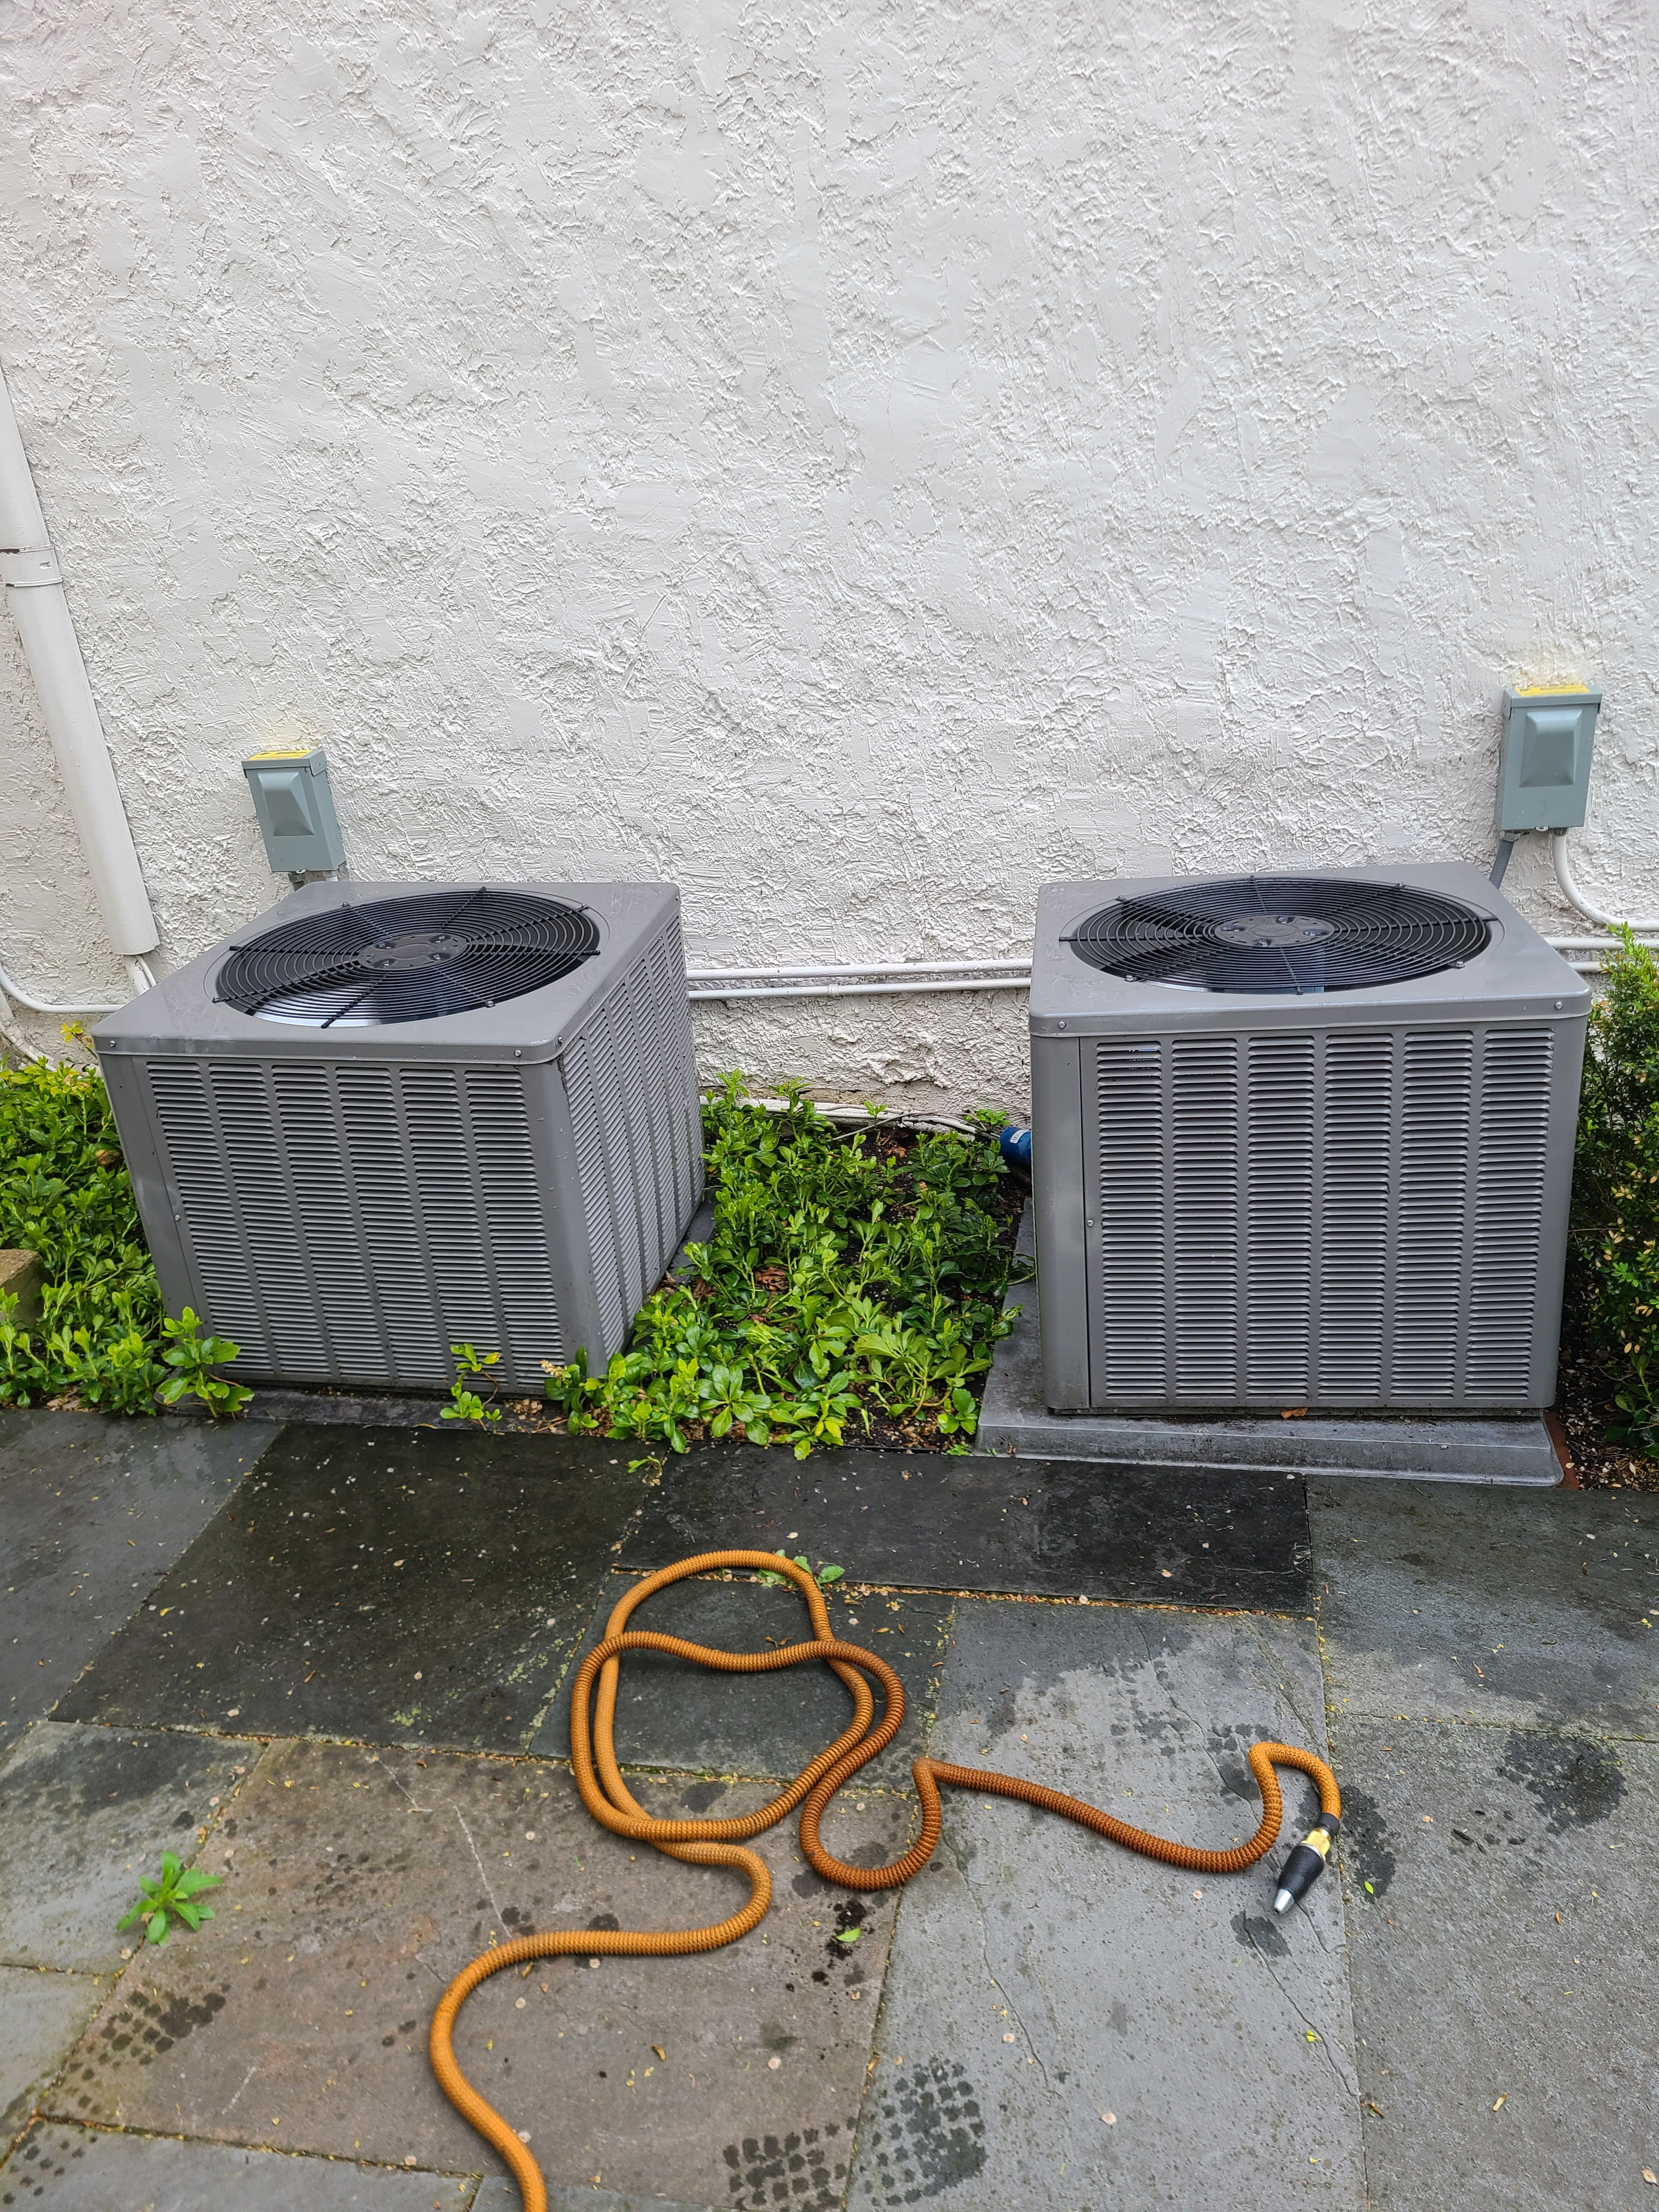 2 RHEEM 410a system checked and cleaned...ready for spring/ summer operation